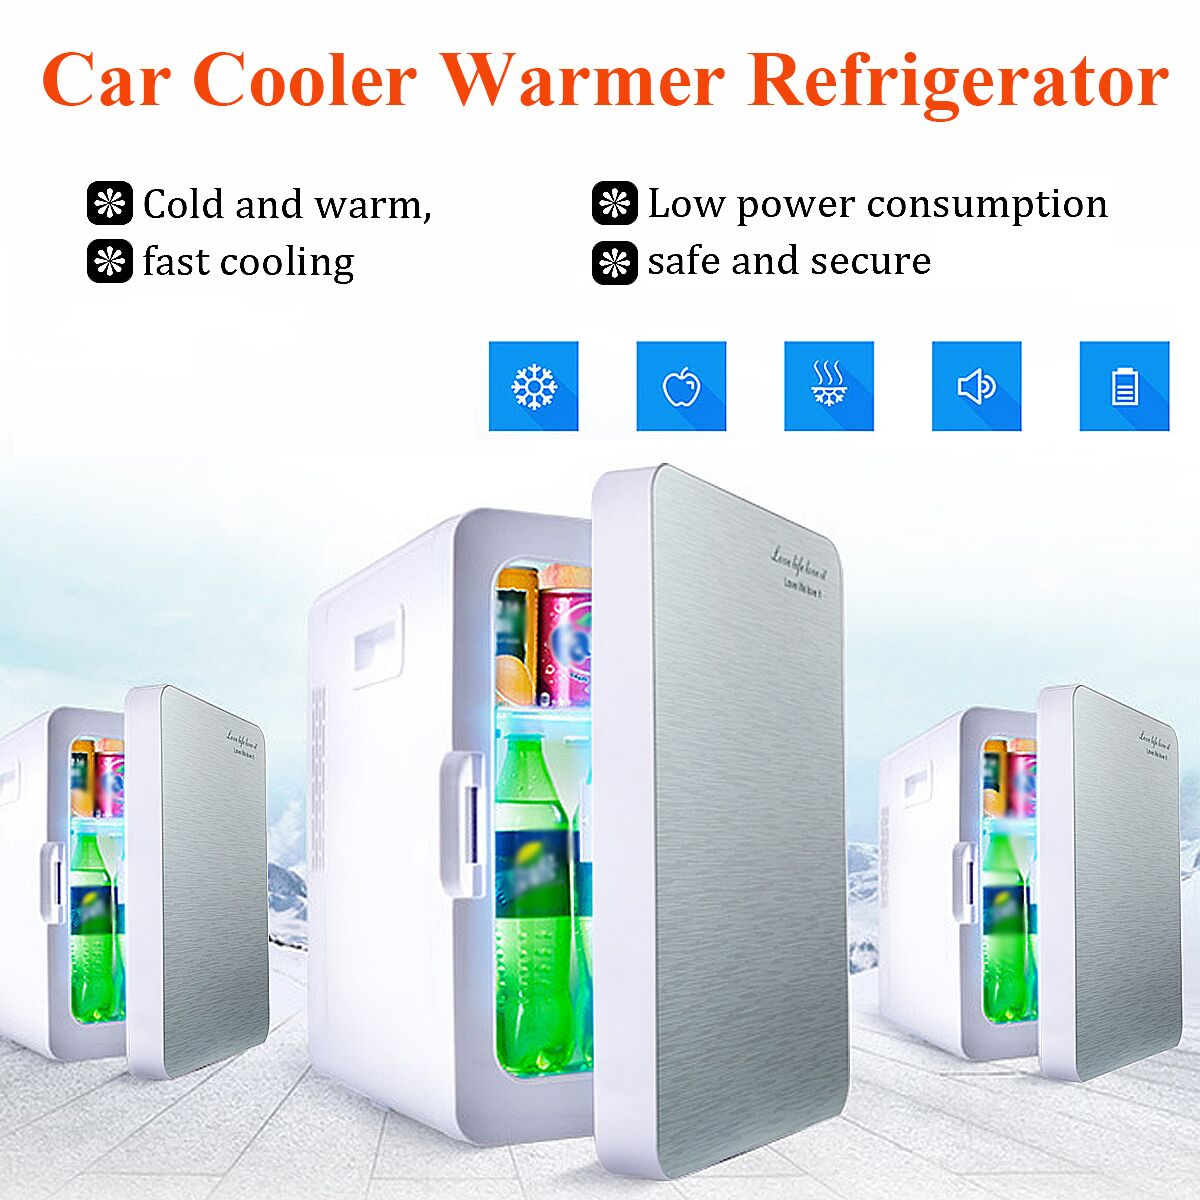 20L Portable Mini Car Refrigerator Cooler Warmer Dual-use Fridge Box for Car Home